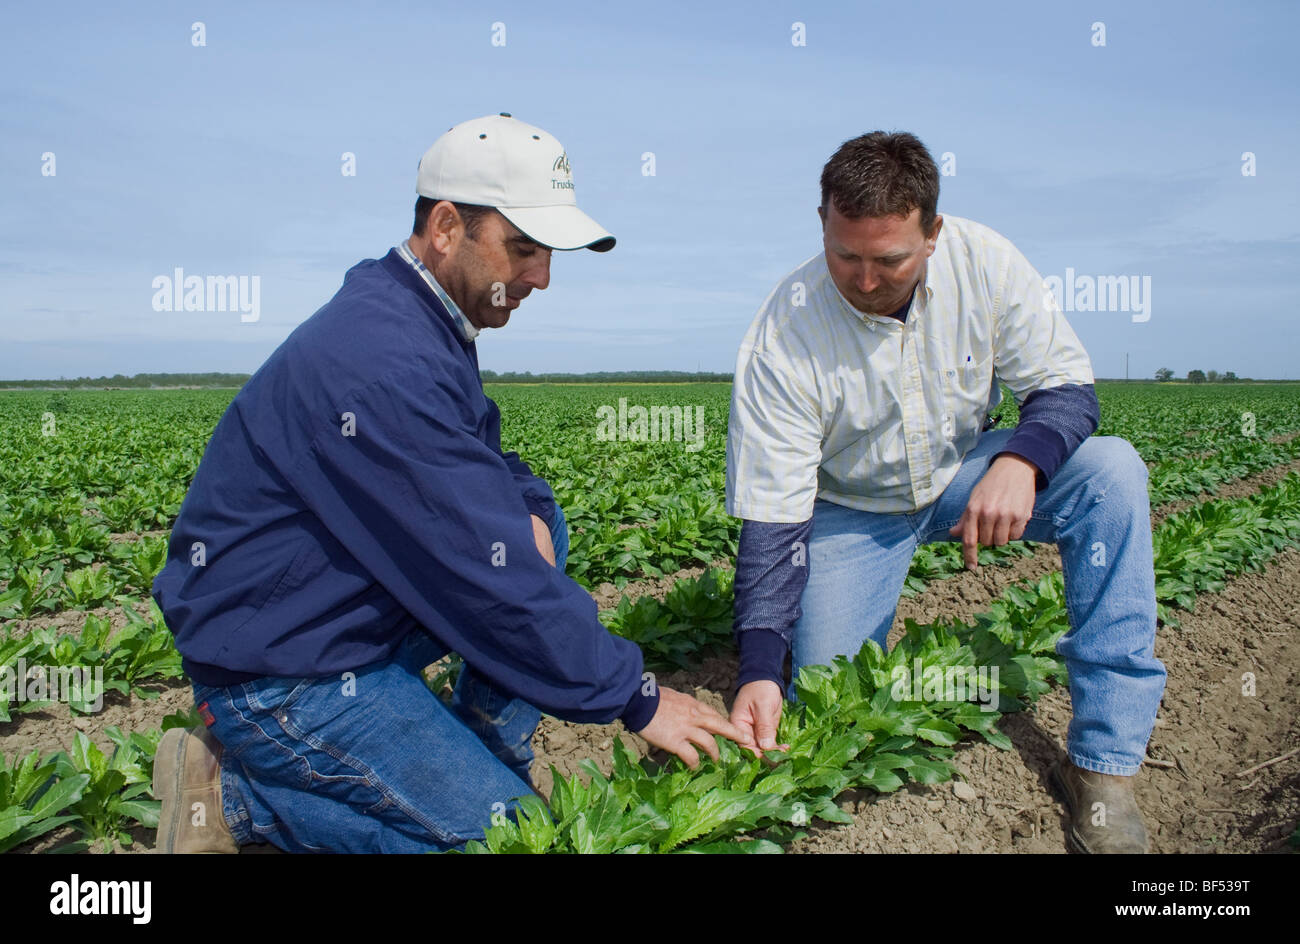 Agriculture - A grower and commodity broker in the field inspecting a crop of early growth safflower / McArthur, - Stock Image